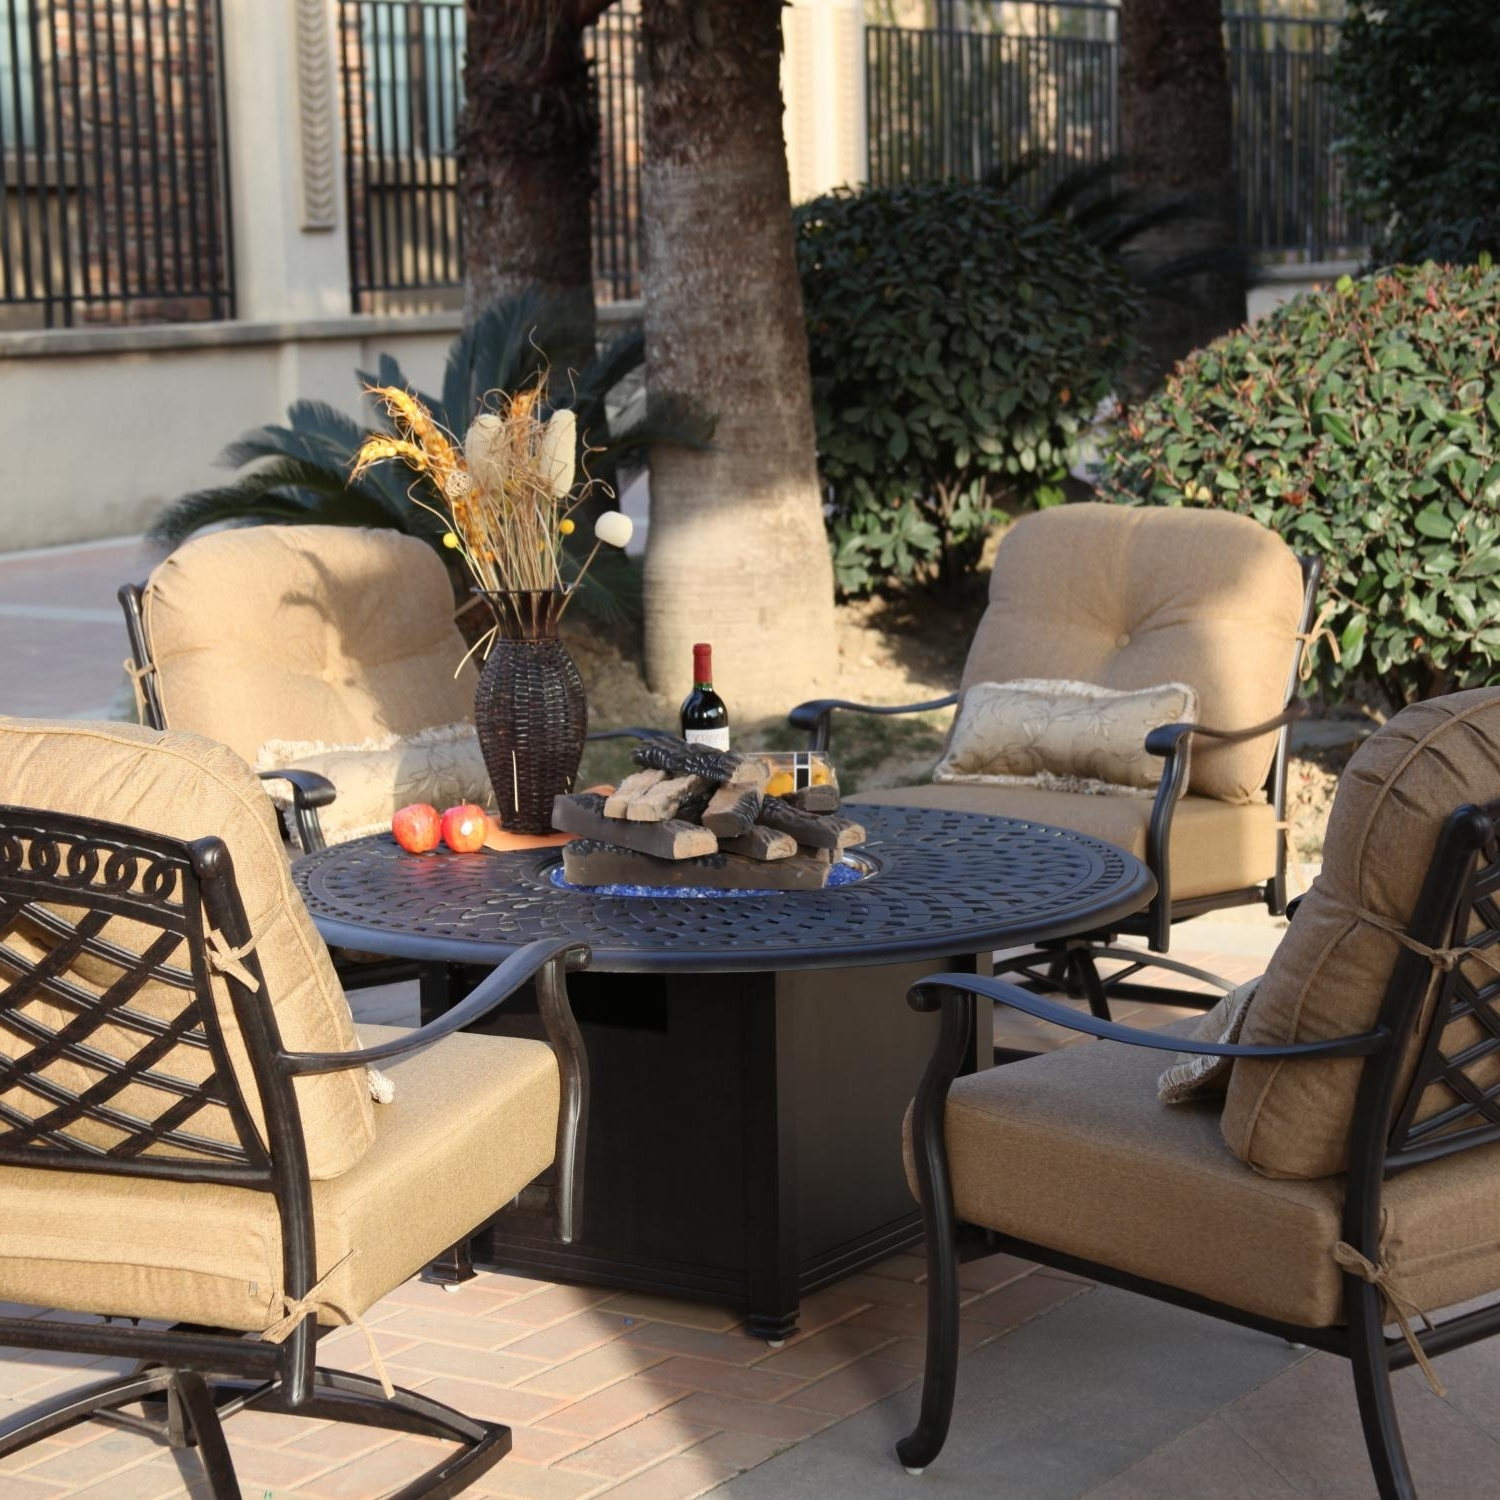 5 Piece Patio Conversation Sets Regarding Well Liked Darlee Sedona 5 Piece Aluminum Patio Fire Pit Seating Set (Gallery 18 of 20)